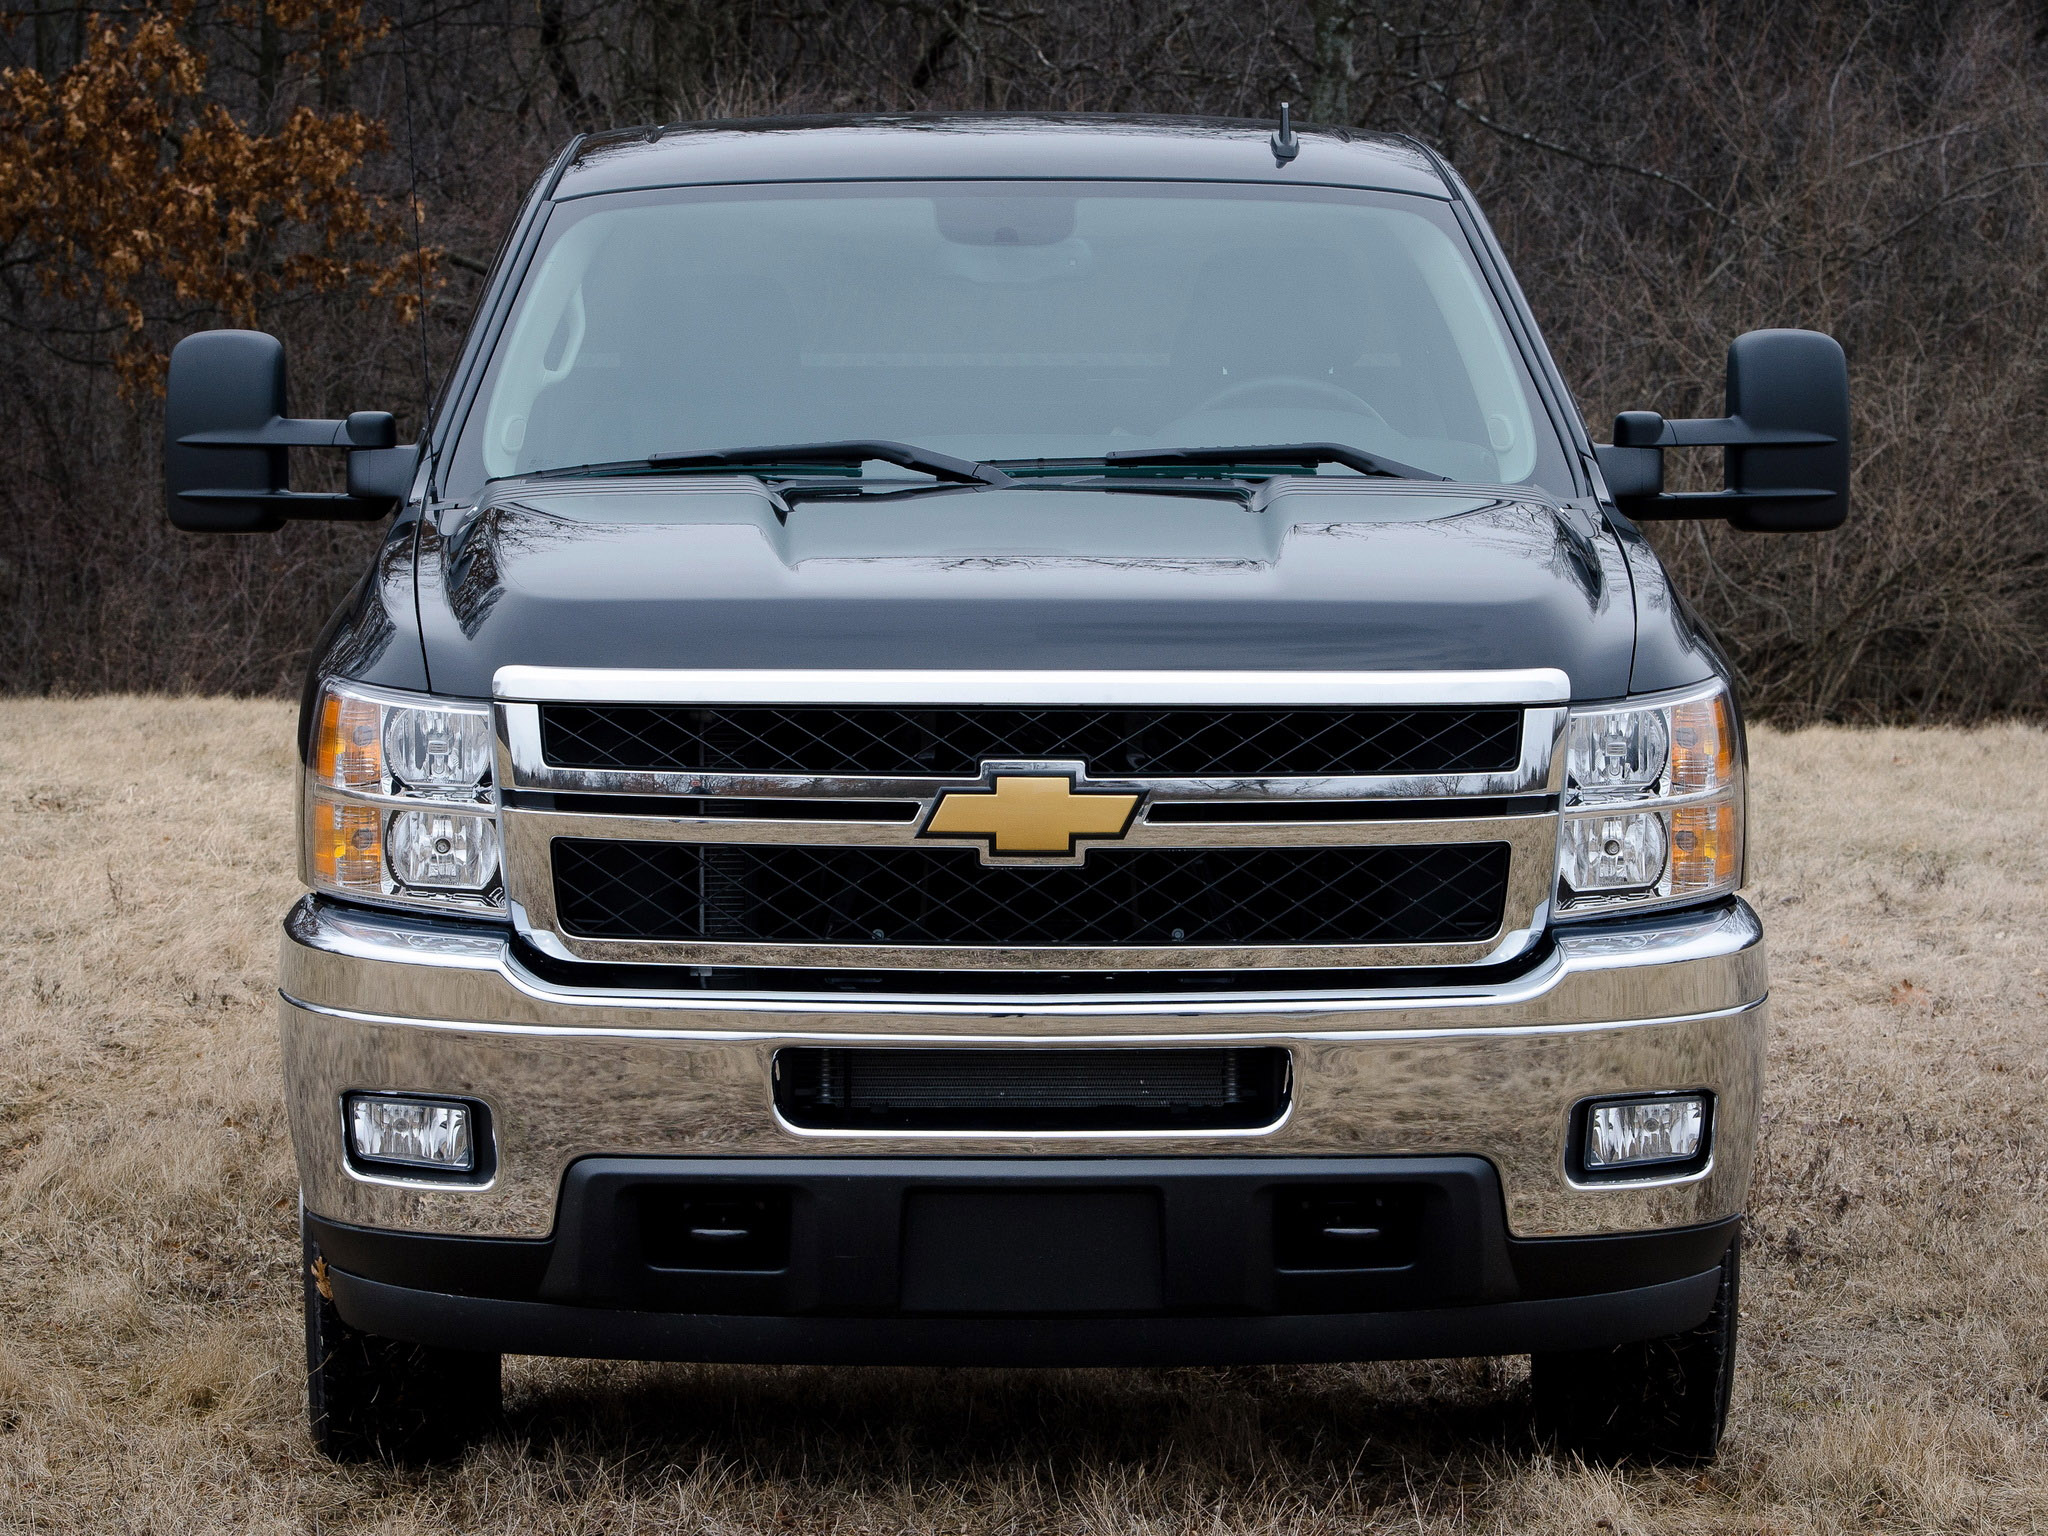 chevrolet silverado 2500 hd cng extended cab 2012. Black Bedroom Furniture Sets. Home Design Ideas